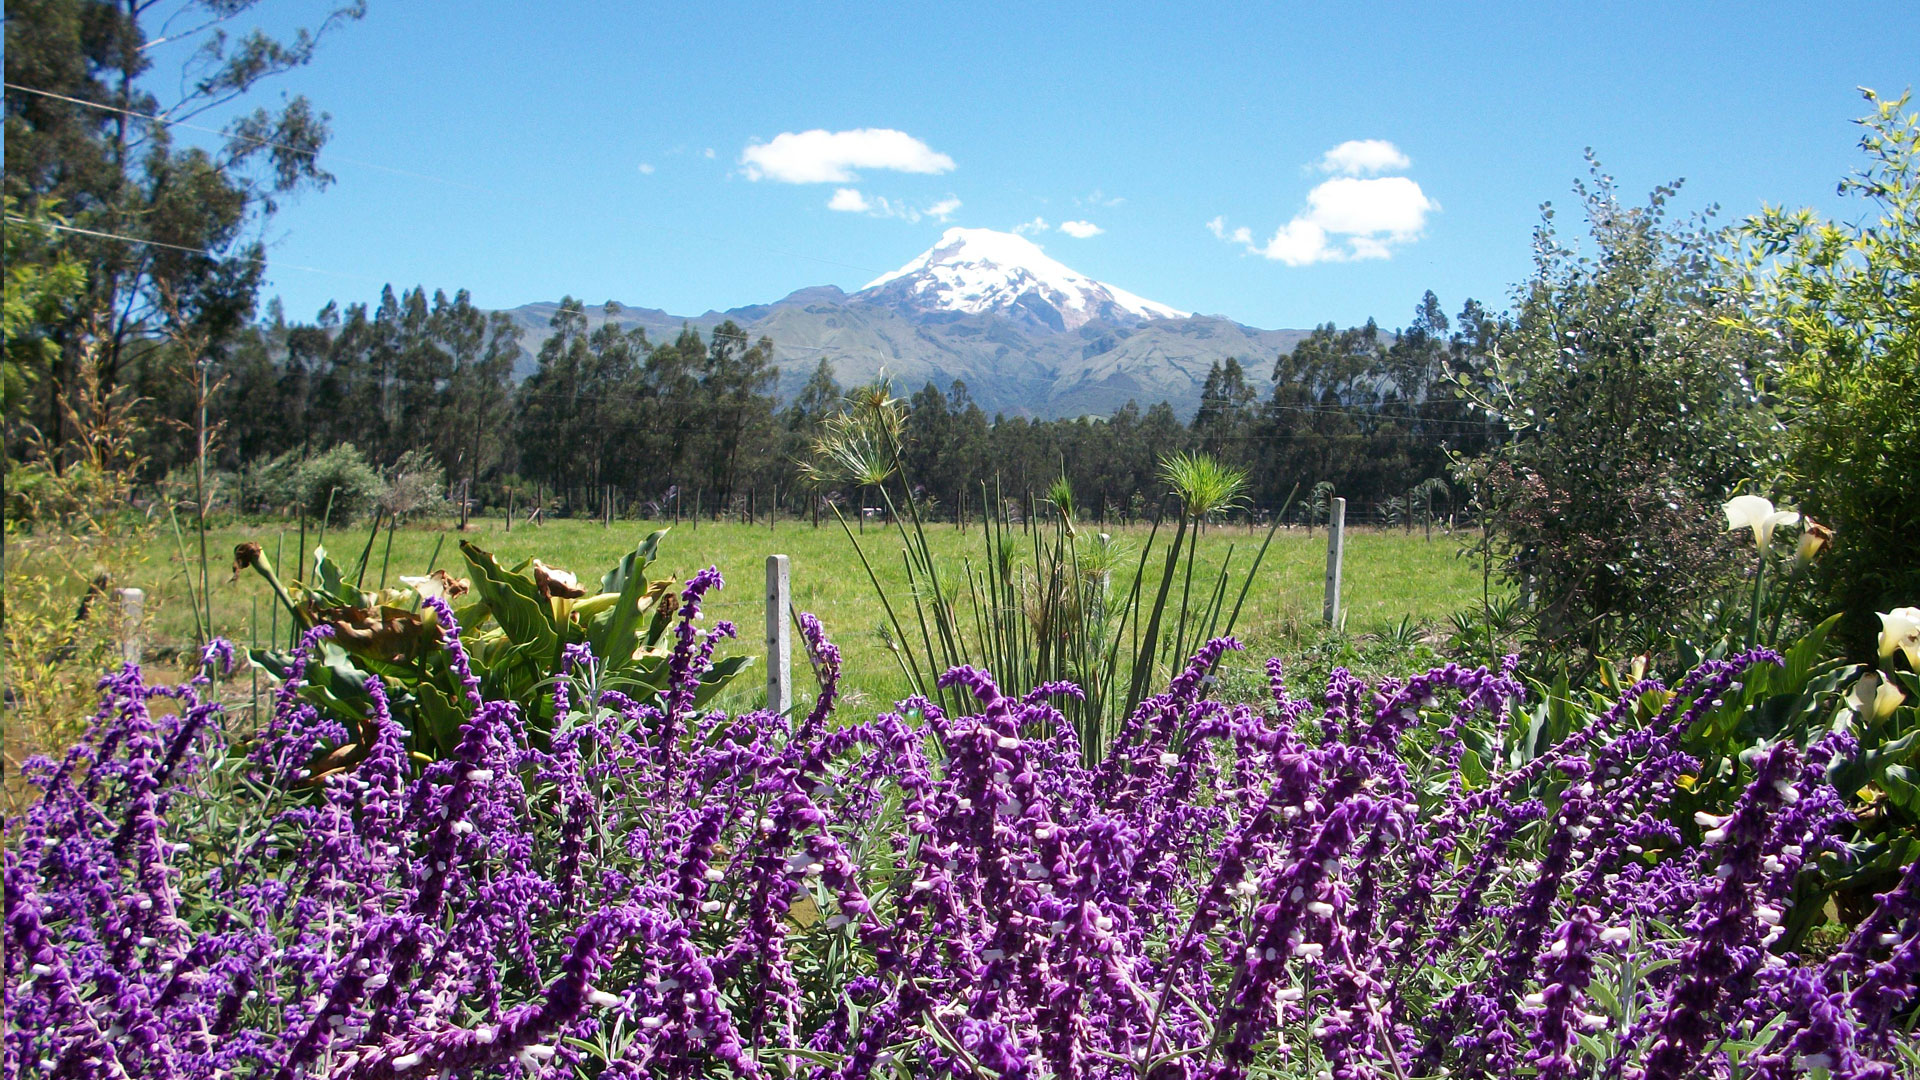 AT THE FOOT OF THE CAYAMBE VOLCANO